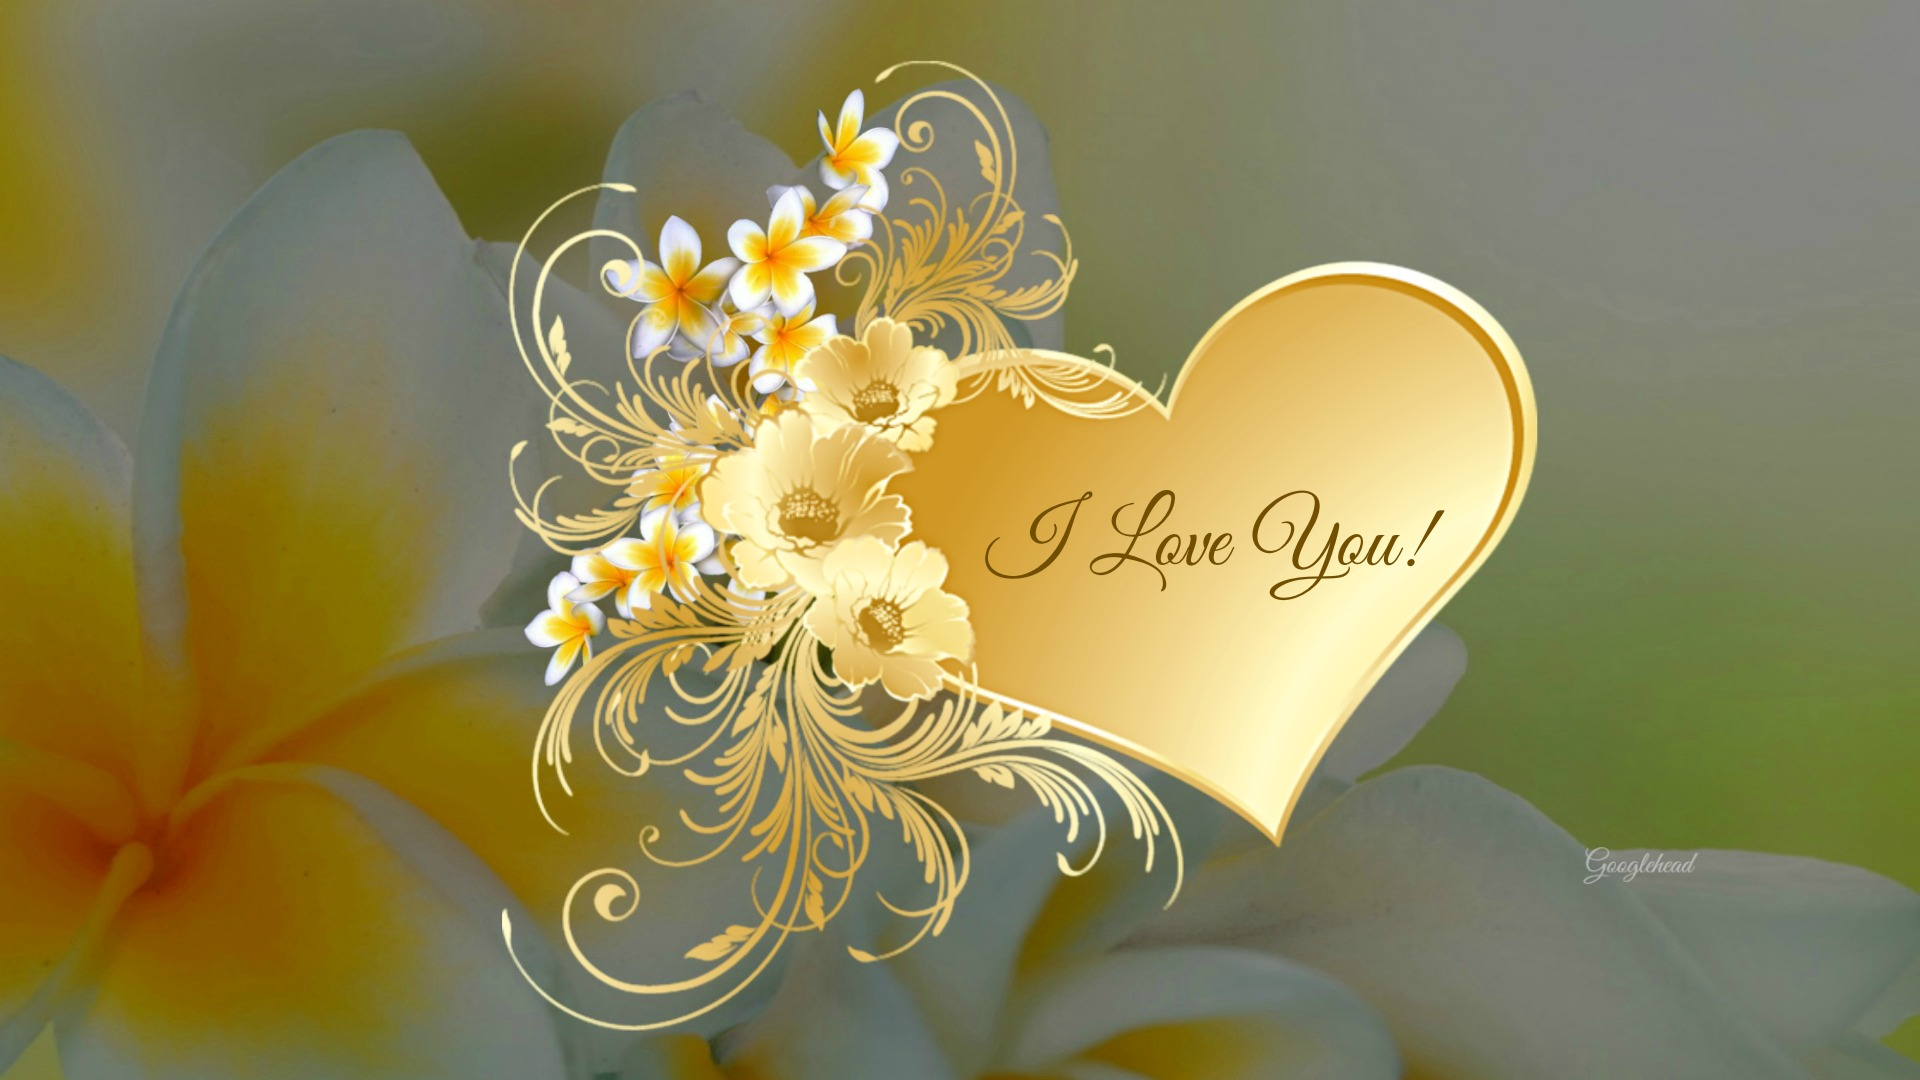 i love you images hd wallpapers 33 wallpapers � adorable